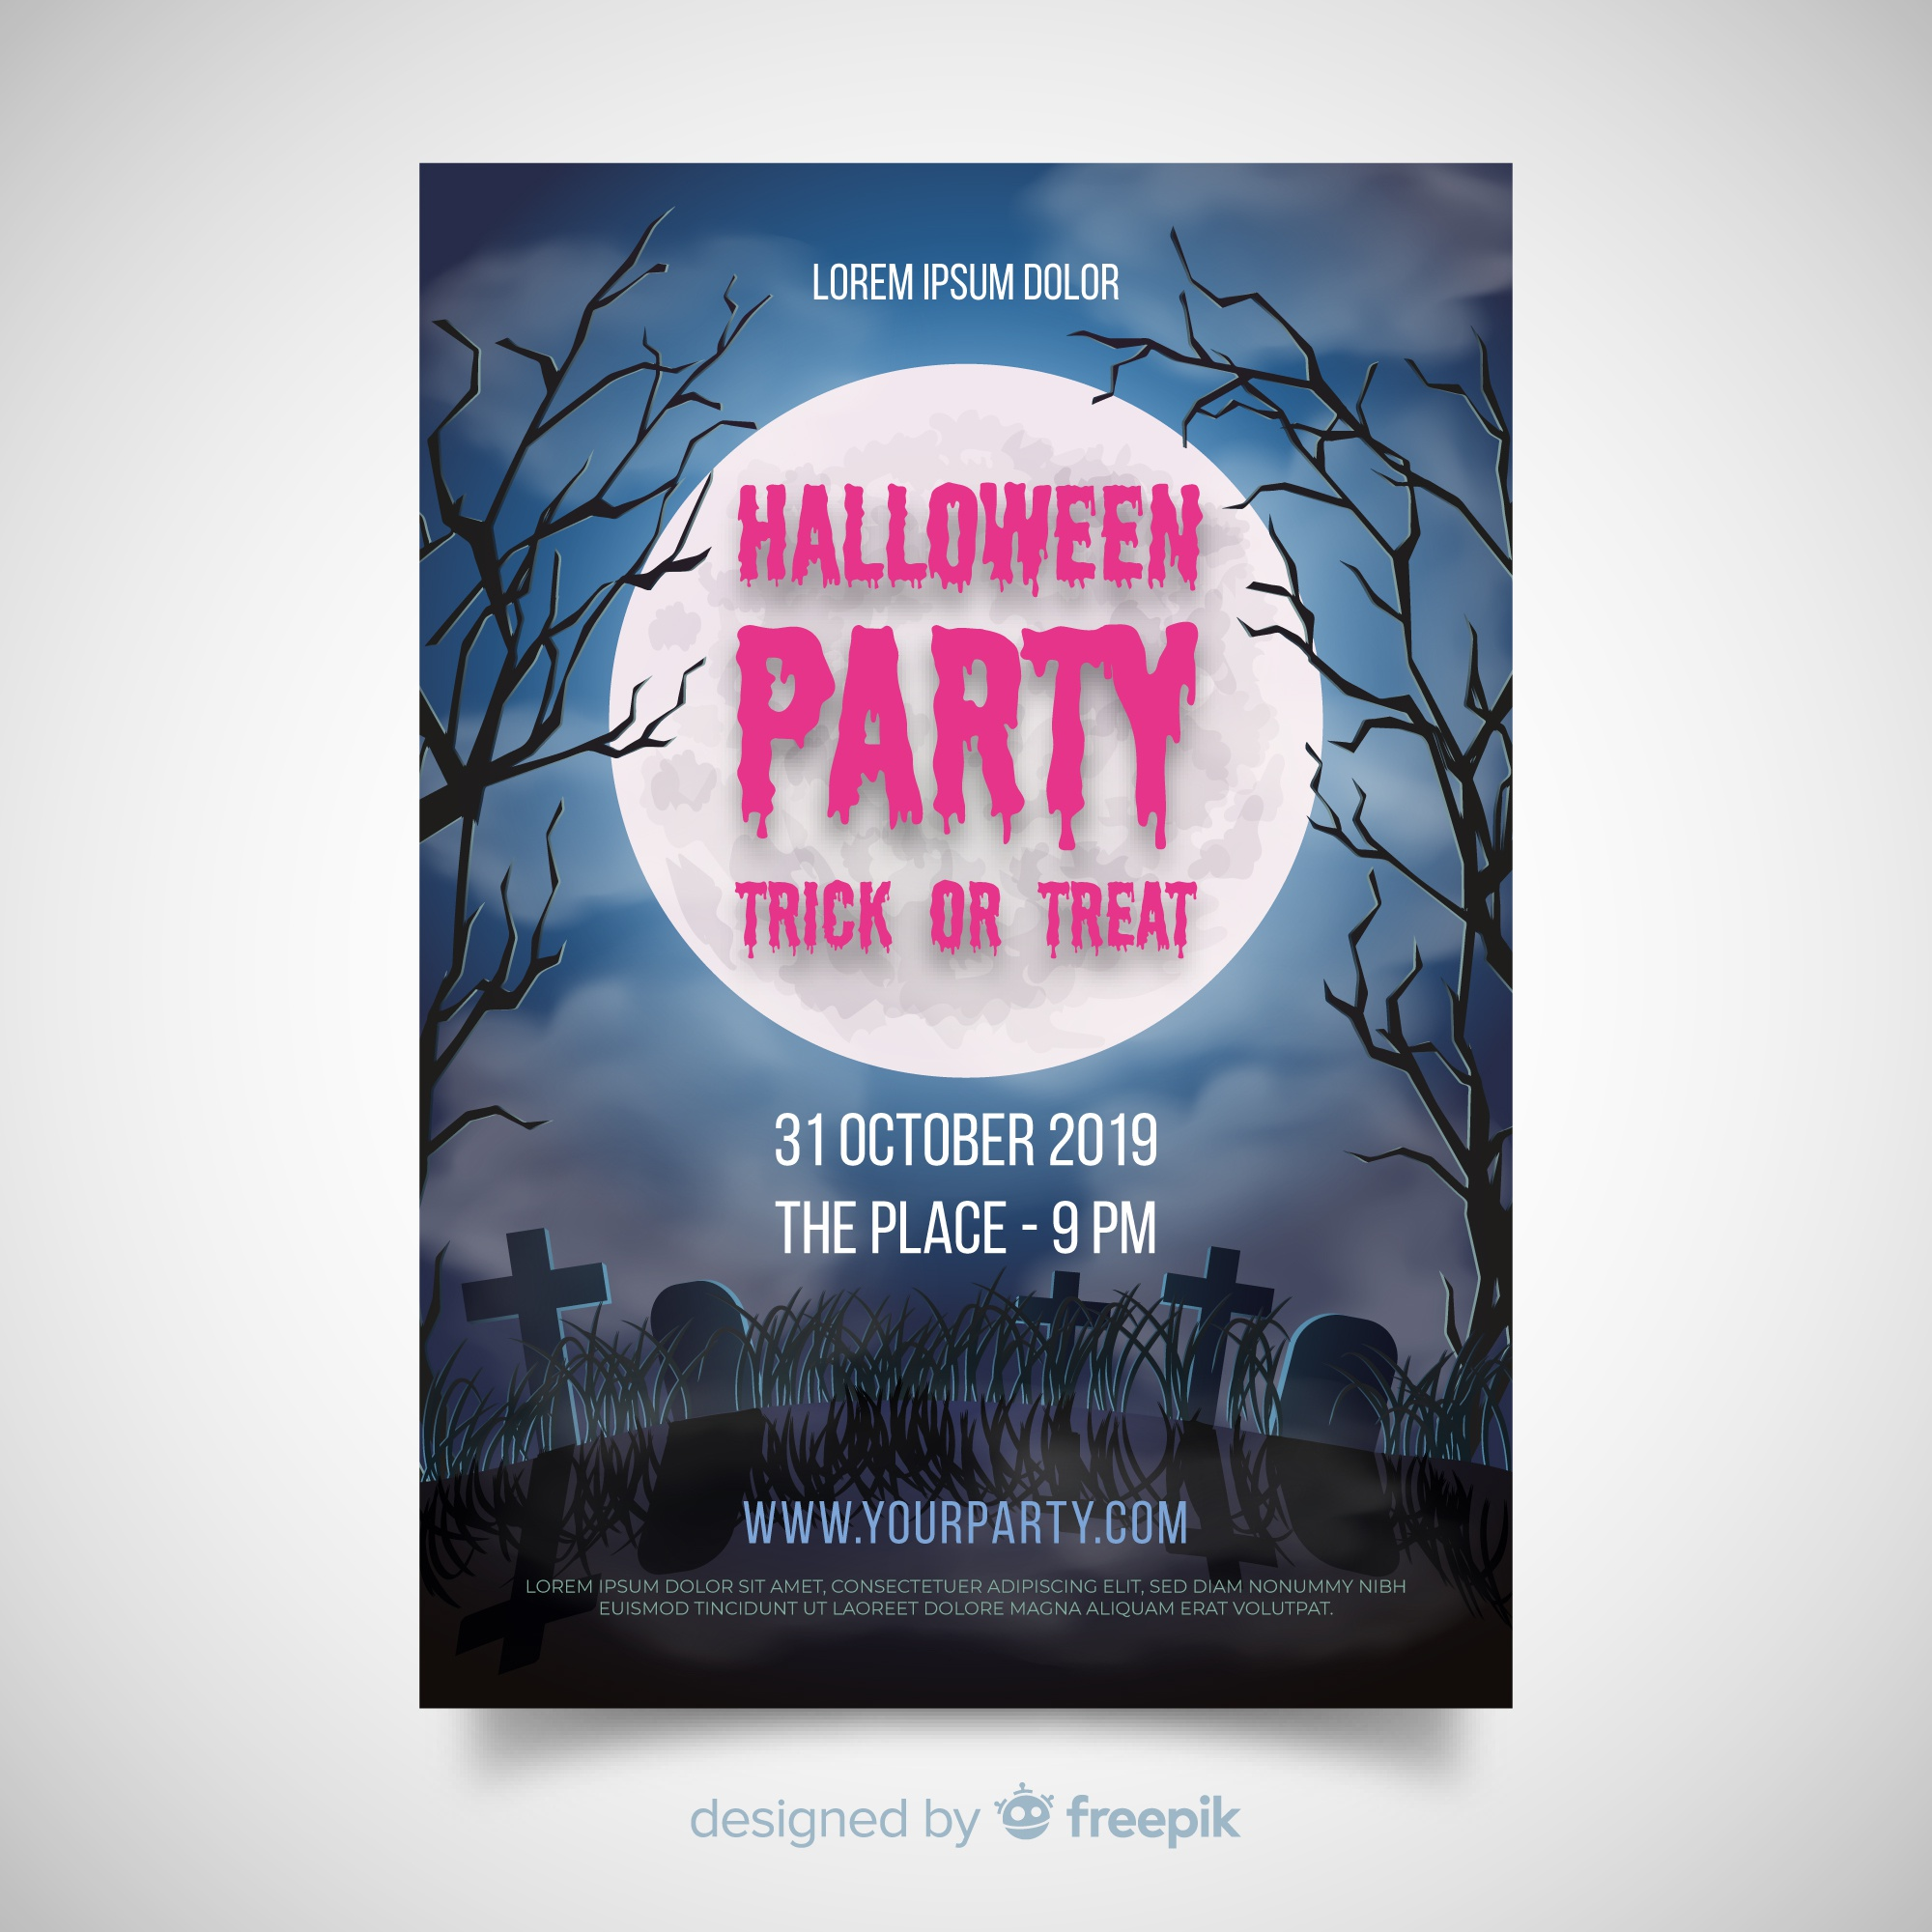 Terrific halloween party poster with realisitc design